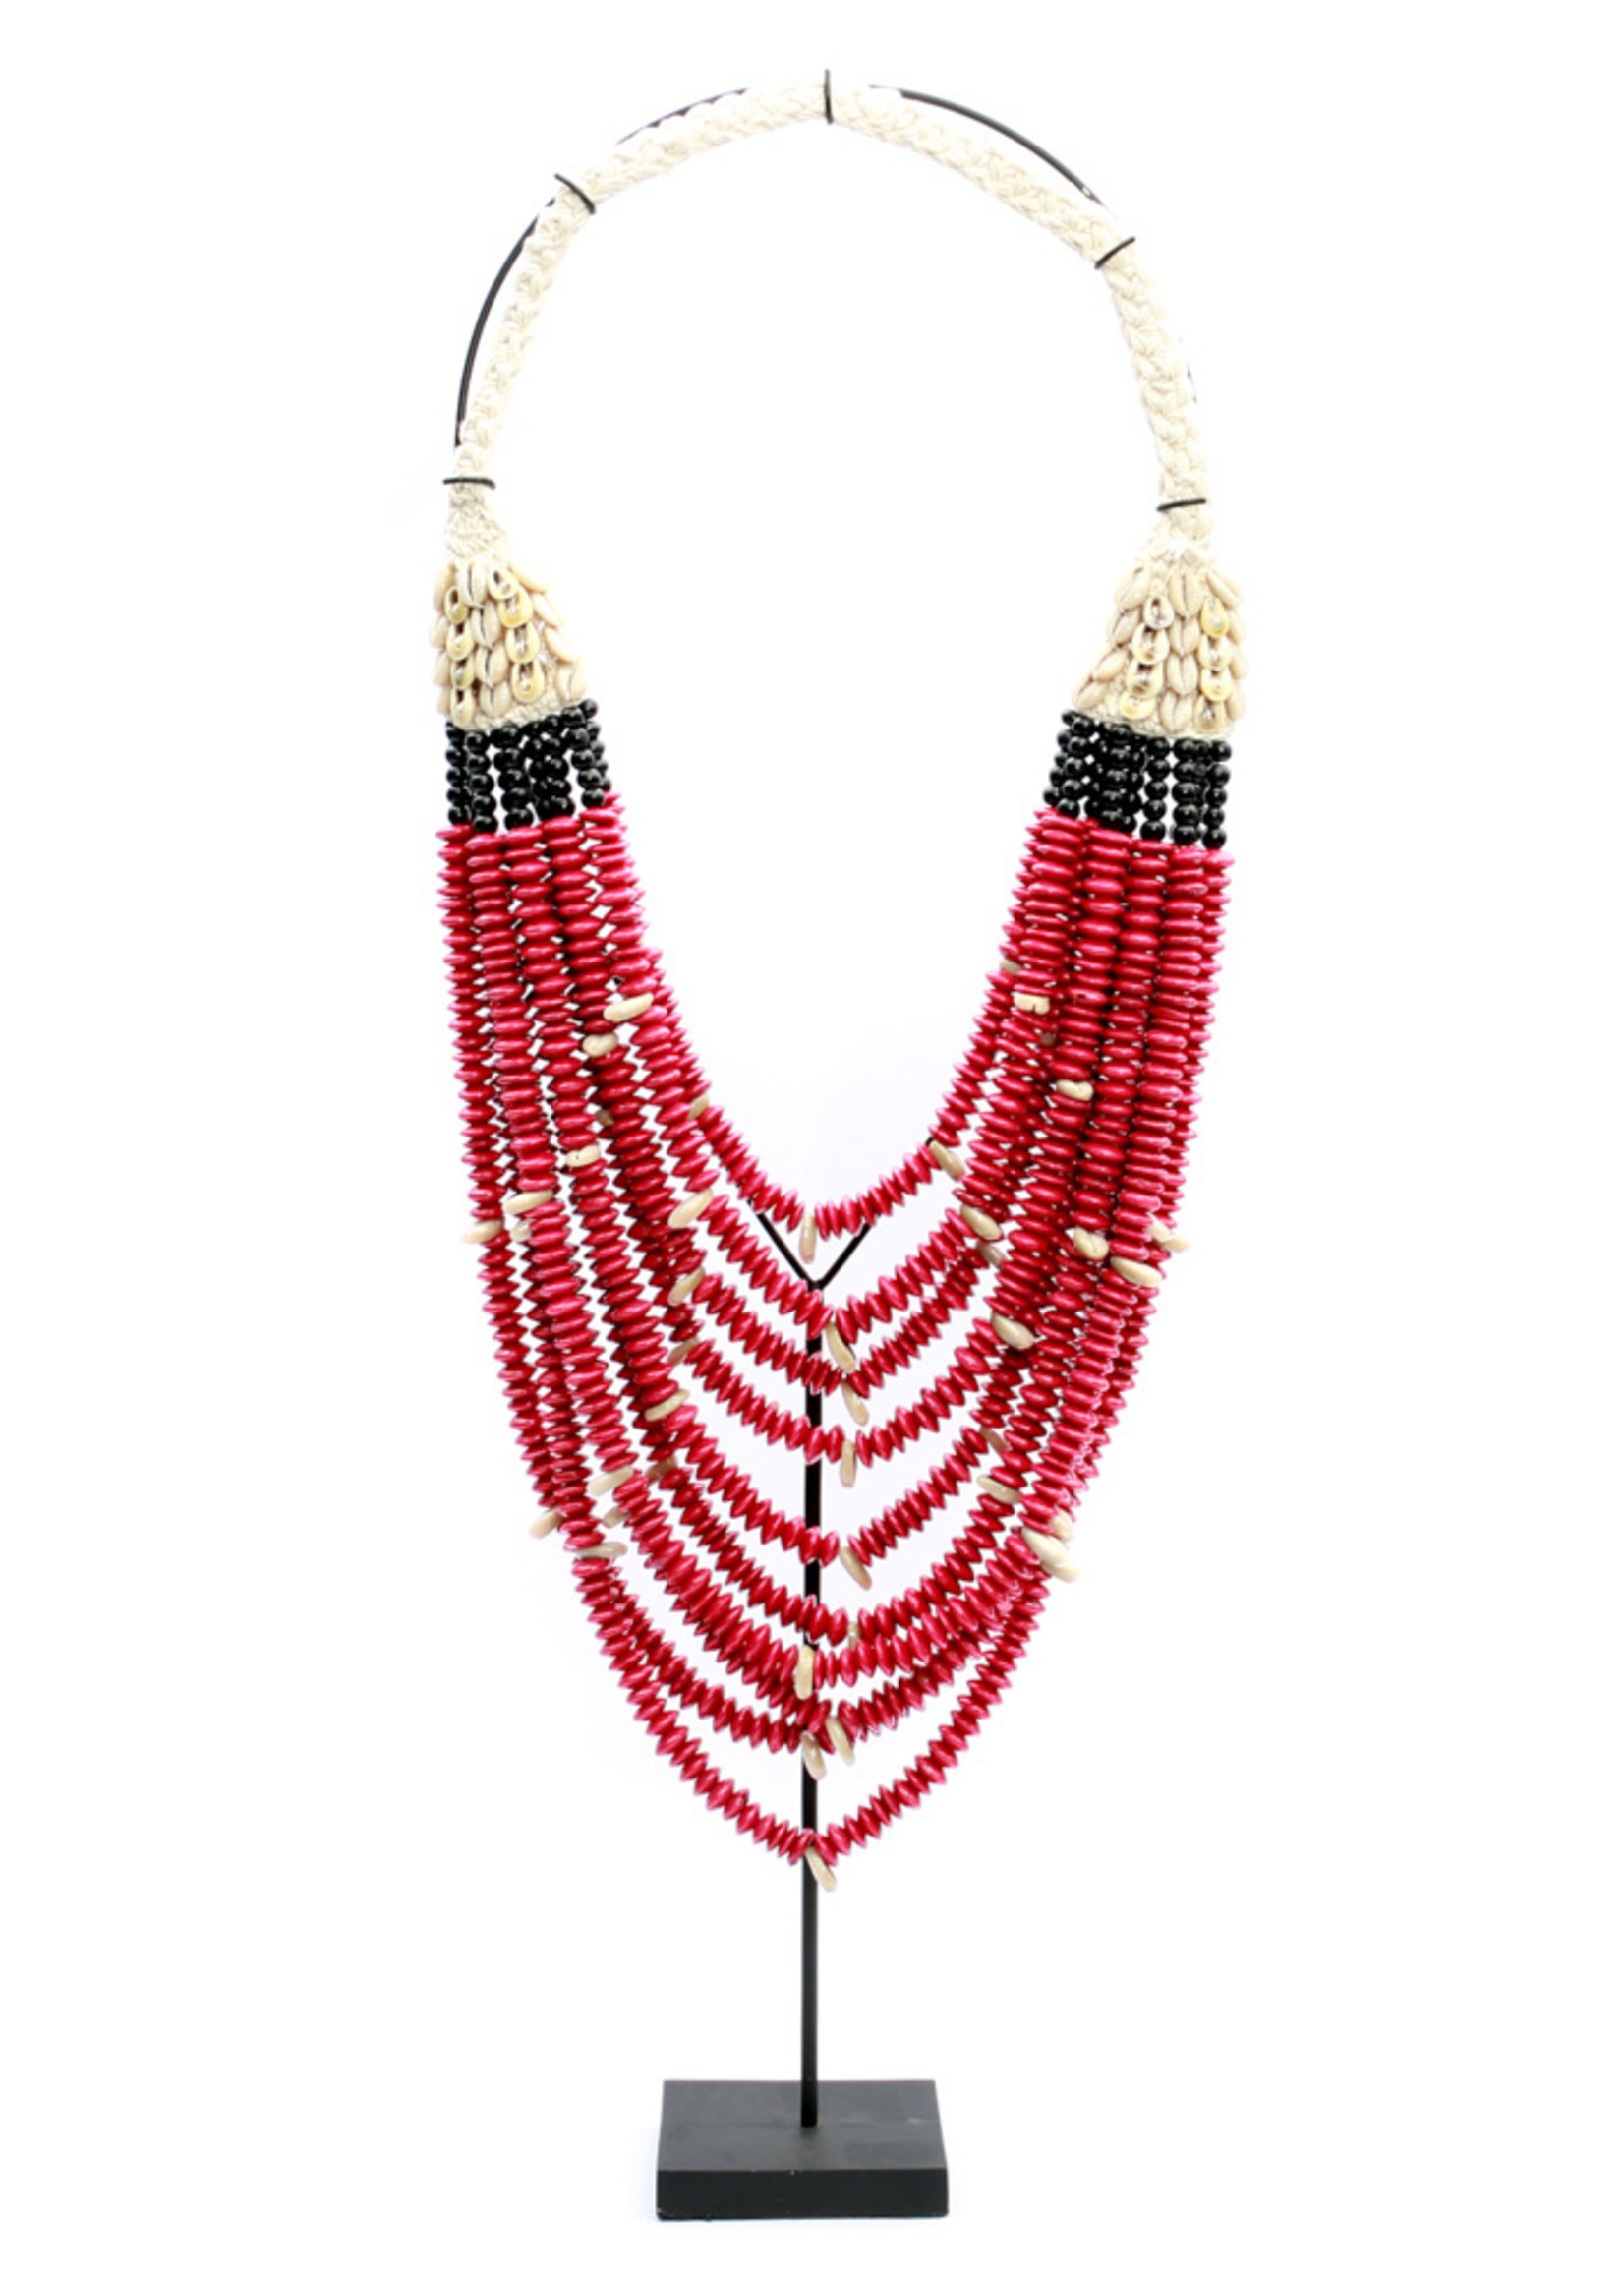 The Red out of Africa Necklace On Stand